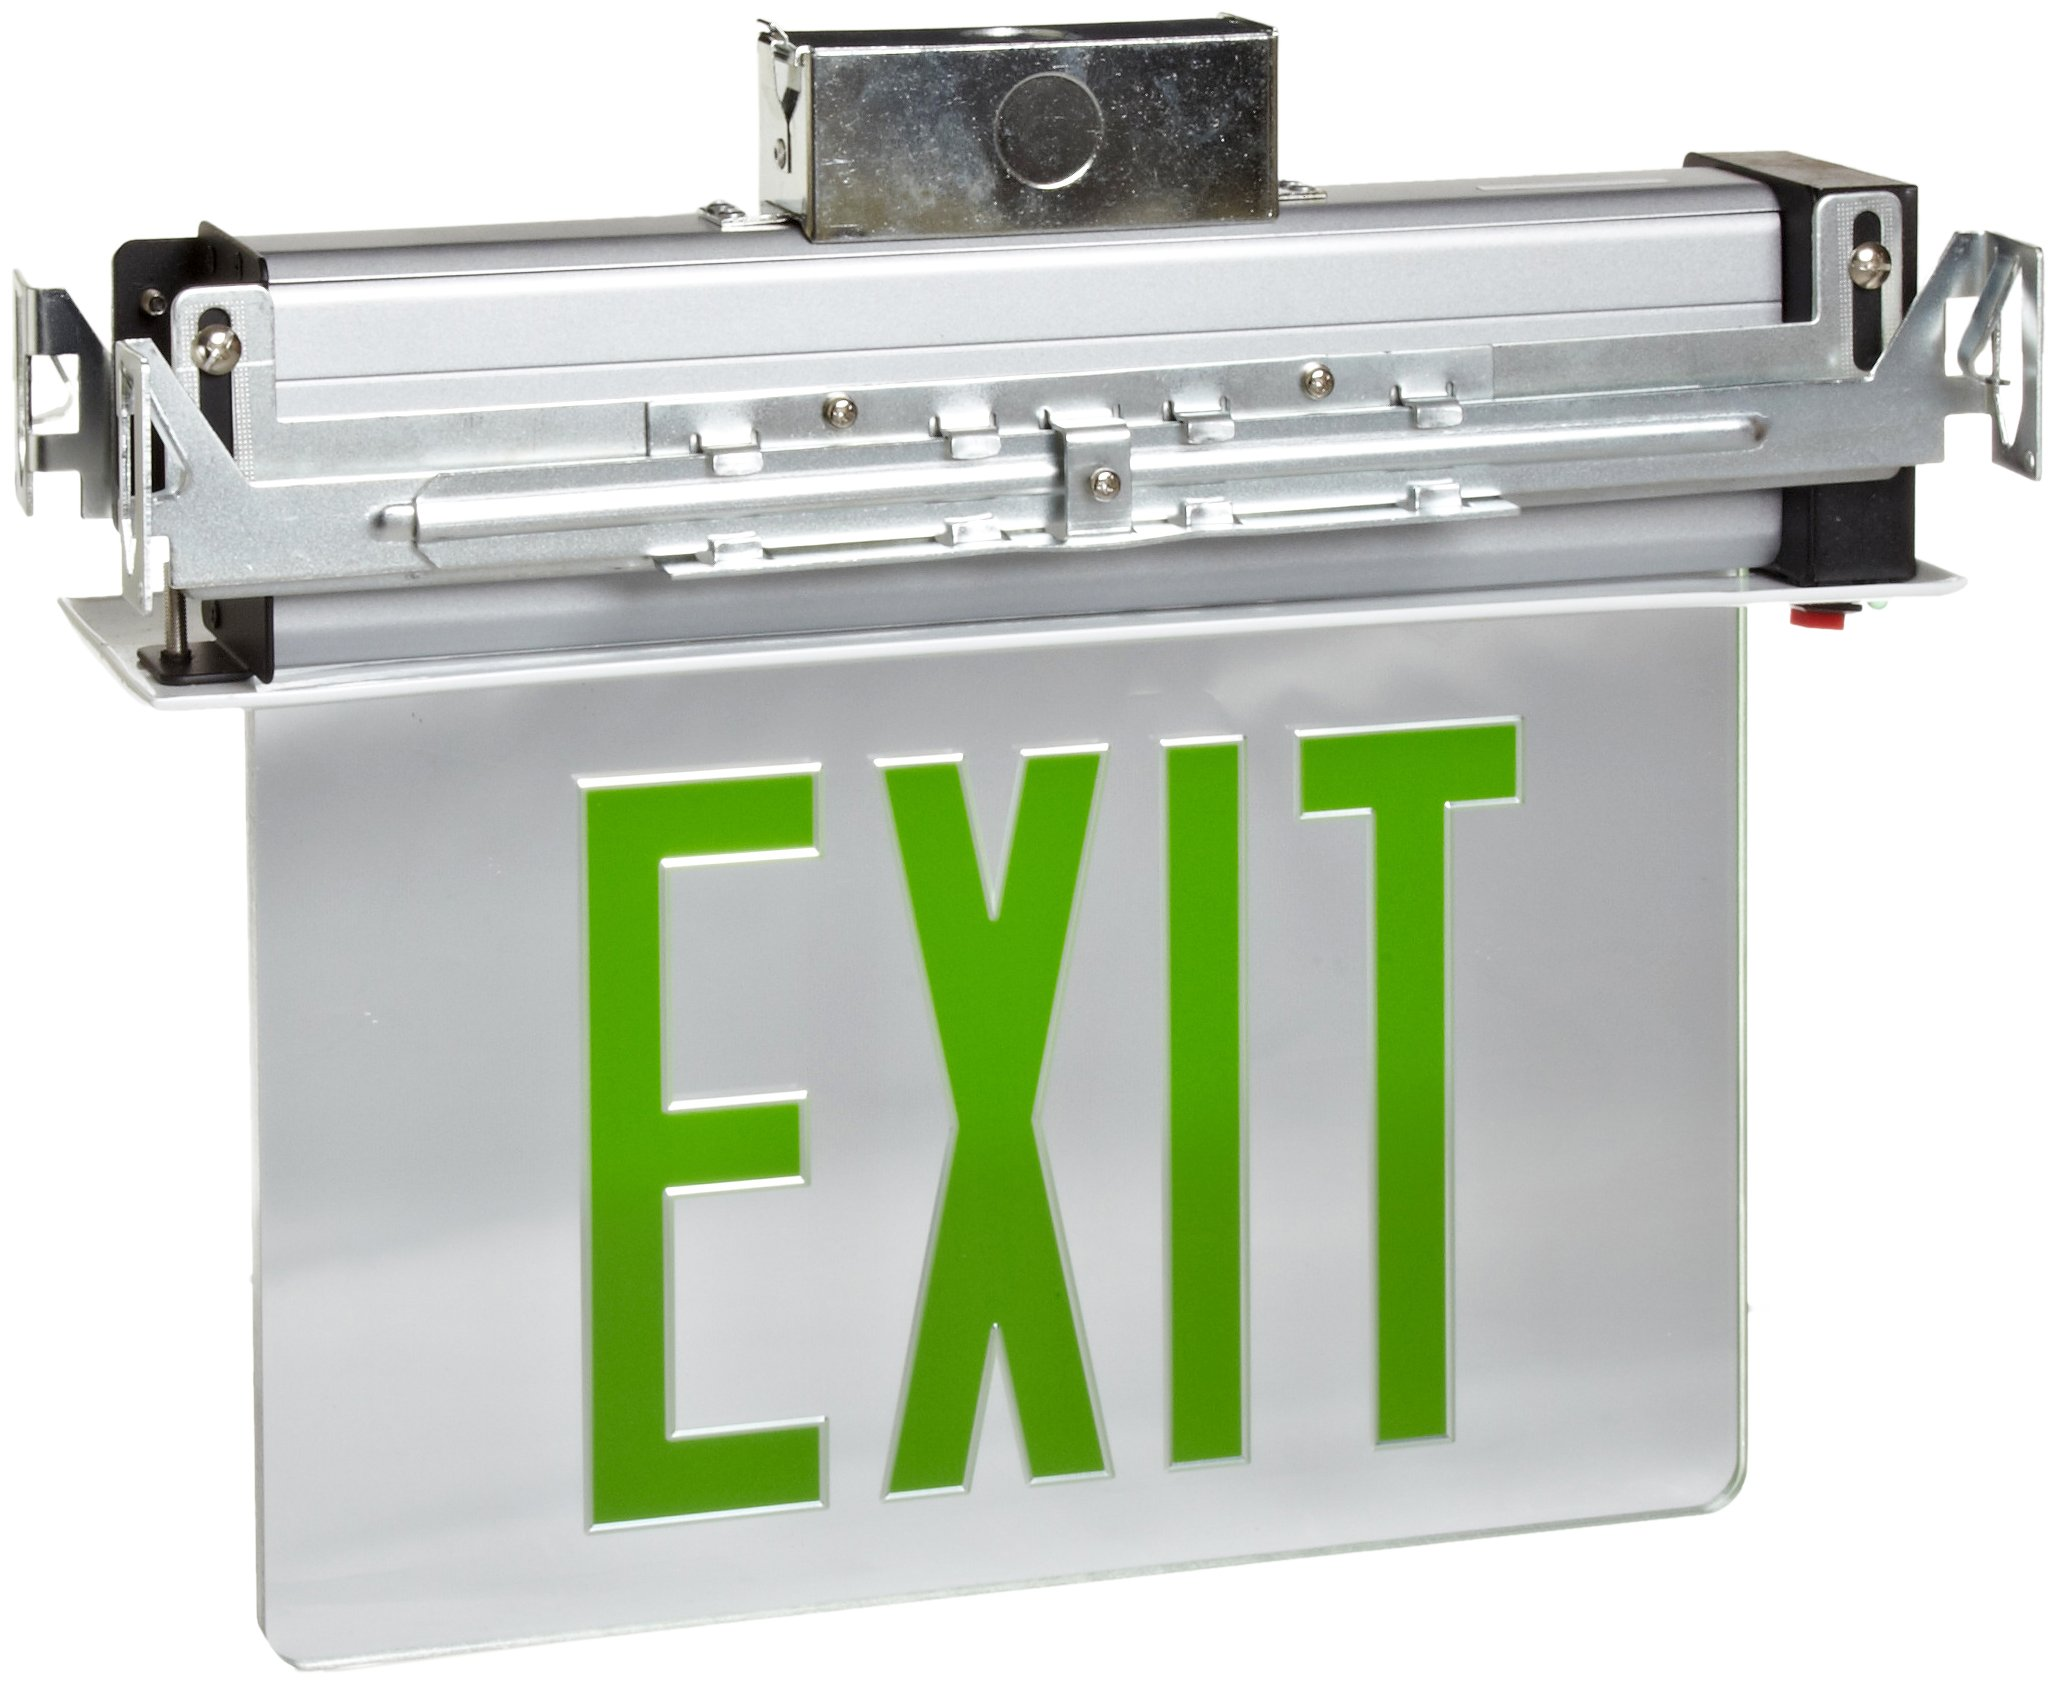 Morris Products LED Exit Sign - Recessed Mount Edge - Green on Clear Panel, White Housing - Compact, Low-Profile Design - Single Sided Legend - Energy Efficient, High Output - 1 Count by Morris Products (Image #1)